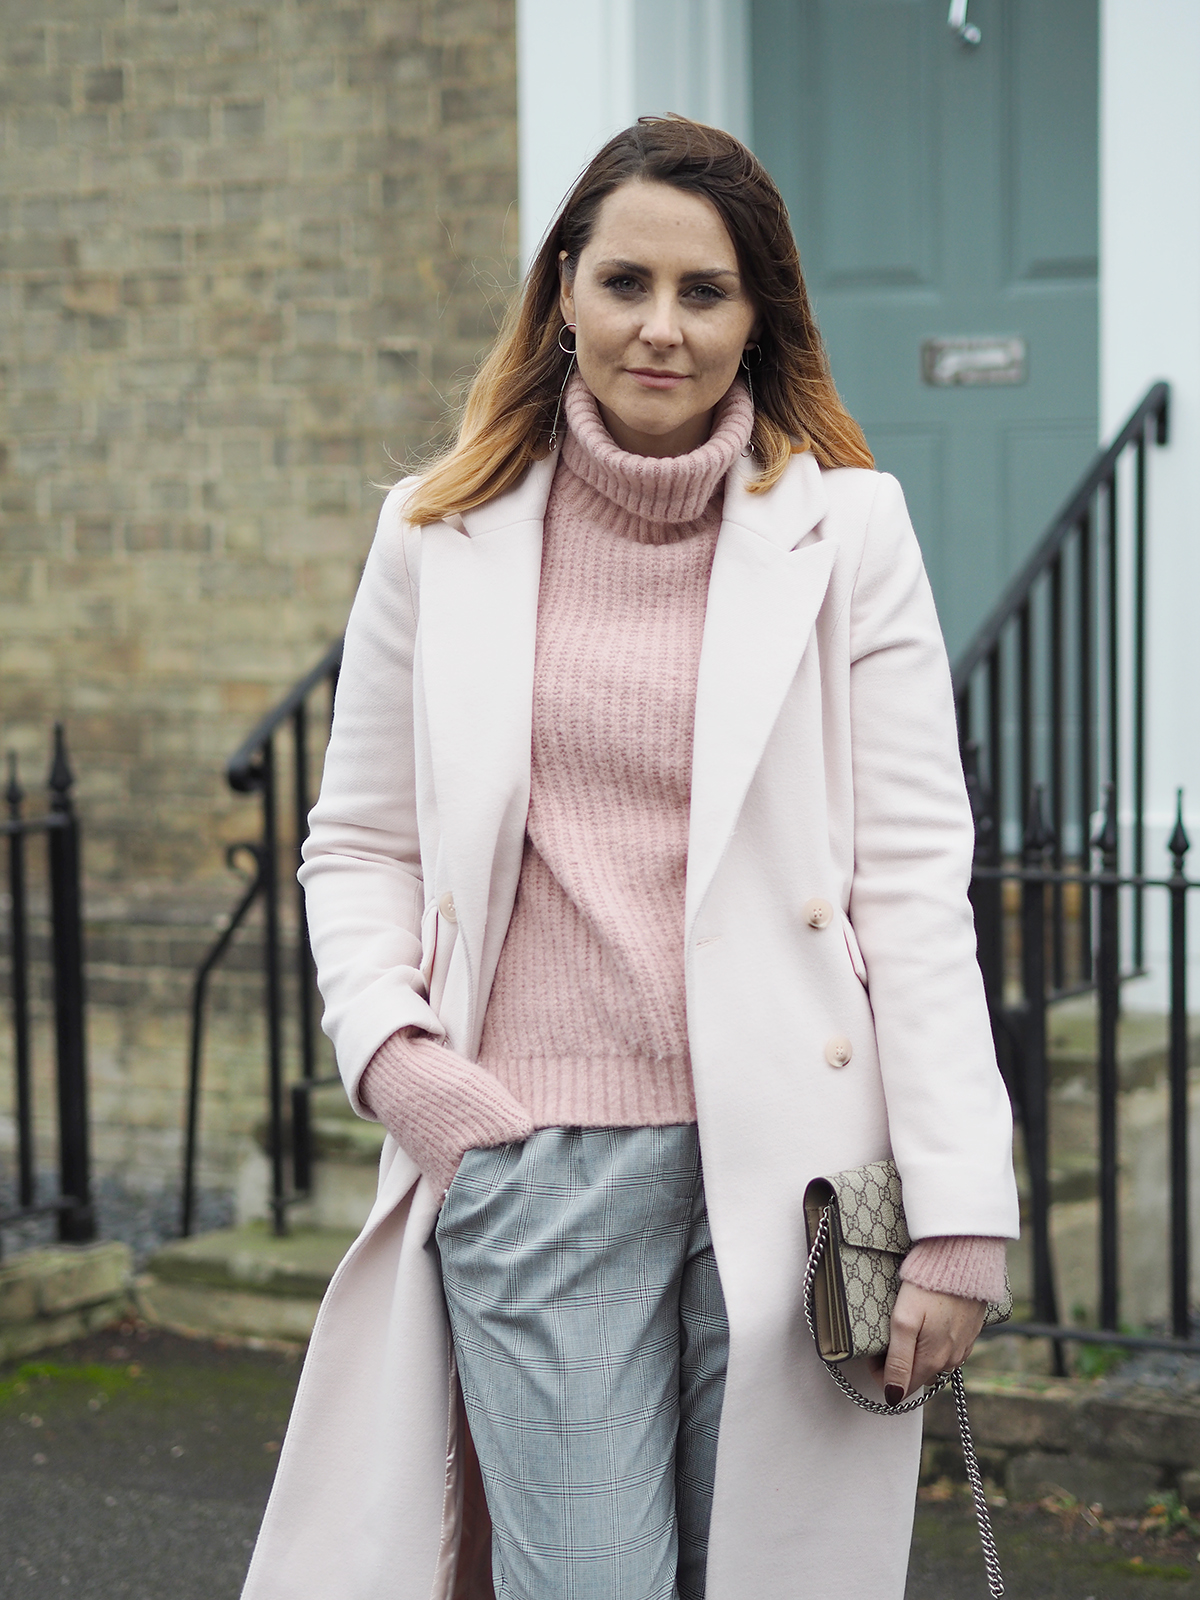 pink winter coat and pink jumper checked trousers outfit gucci dionysus